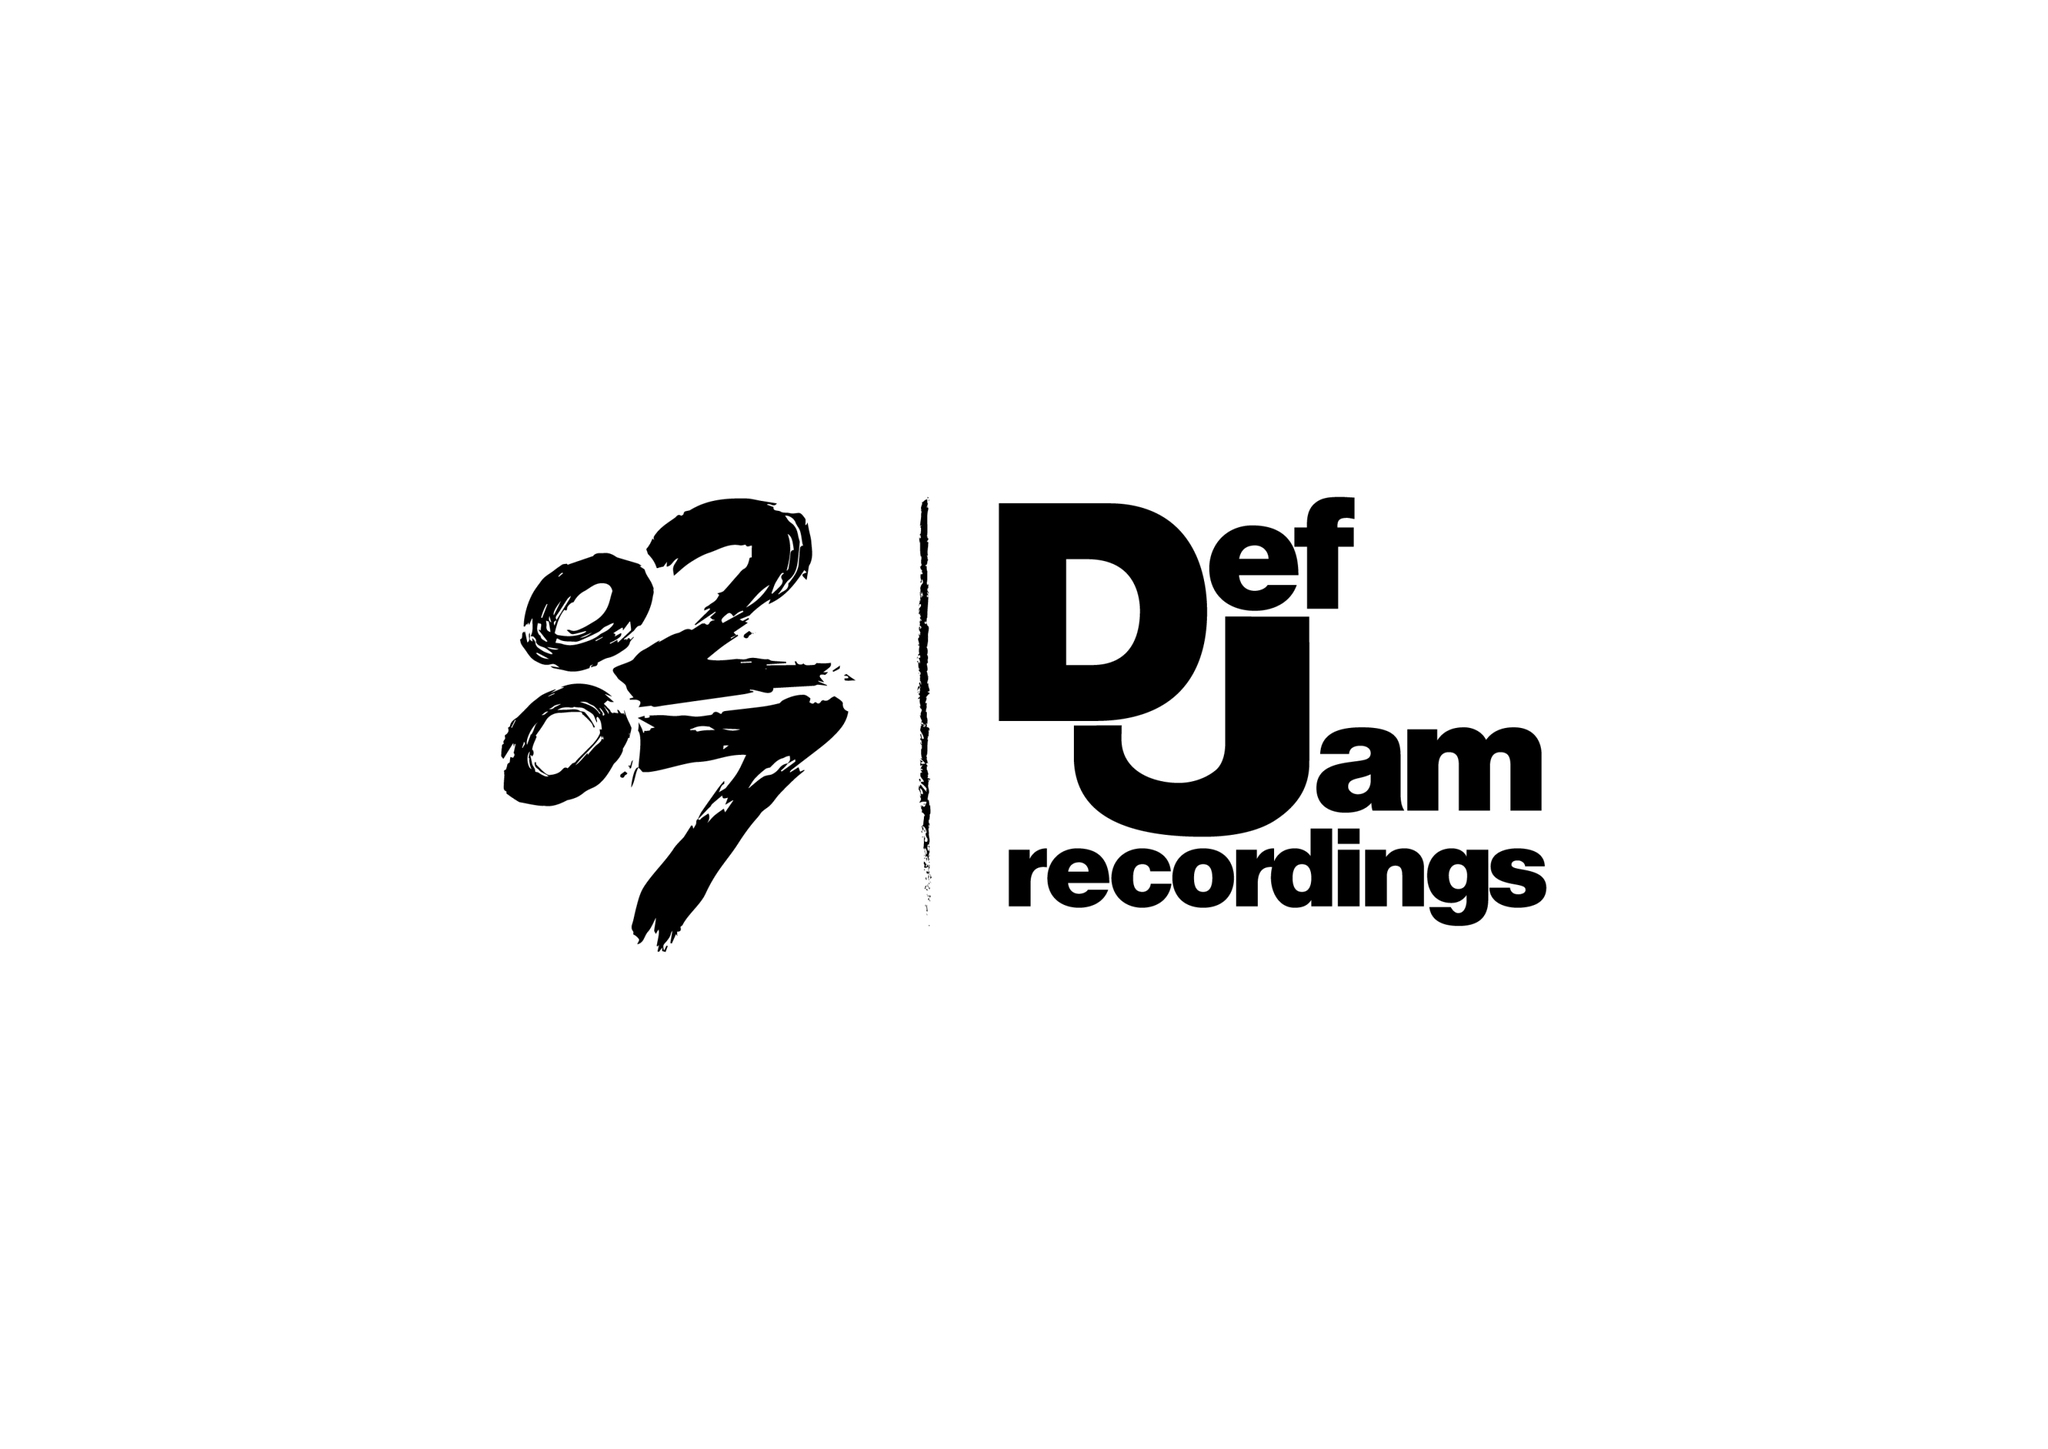 Stormzy Signs to Universal's New UK Label 0207 Def Jam